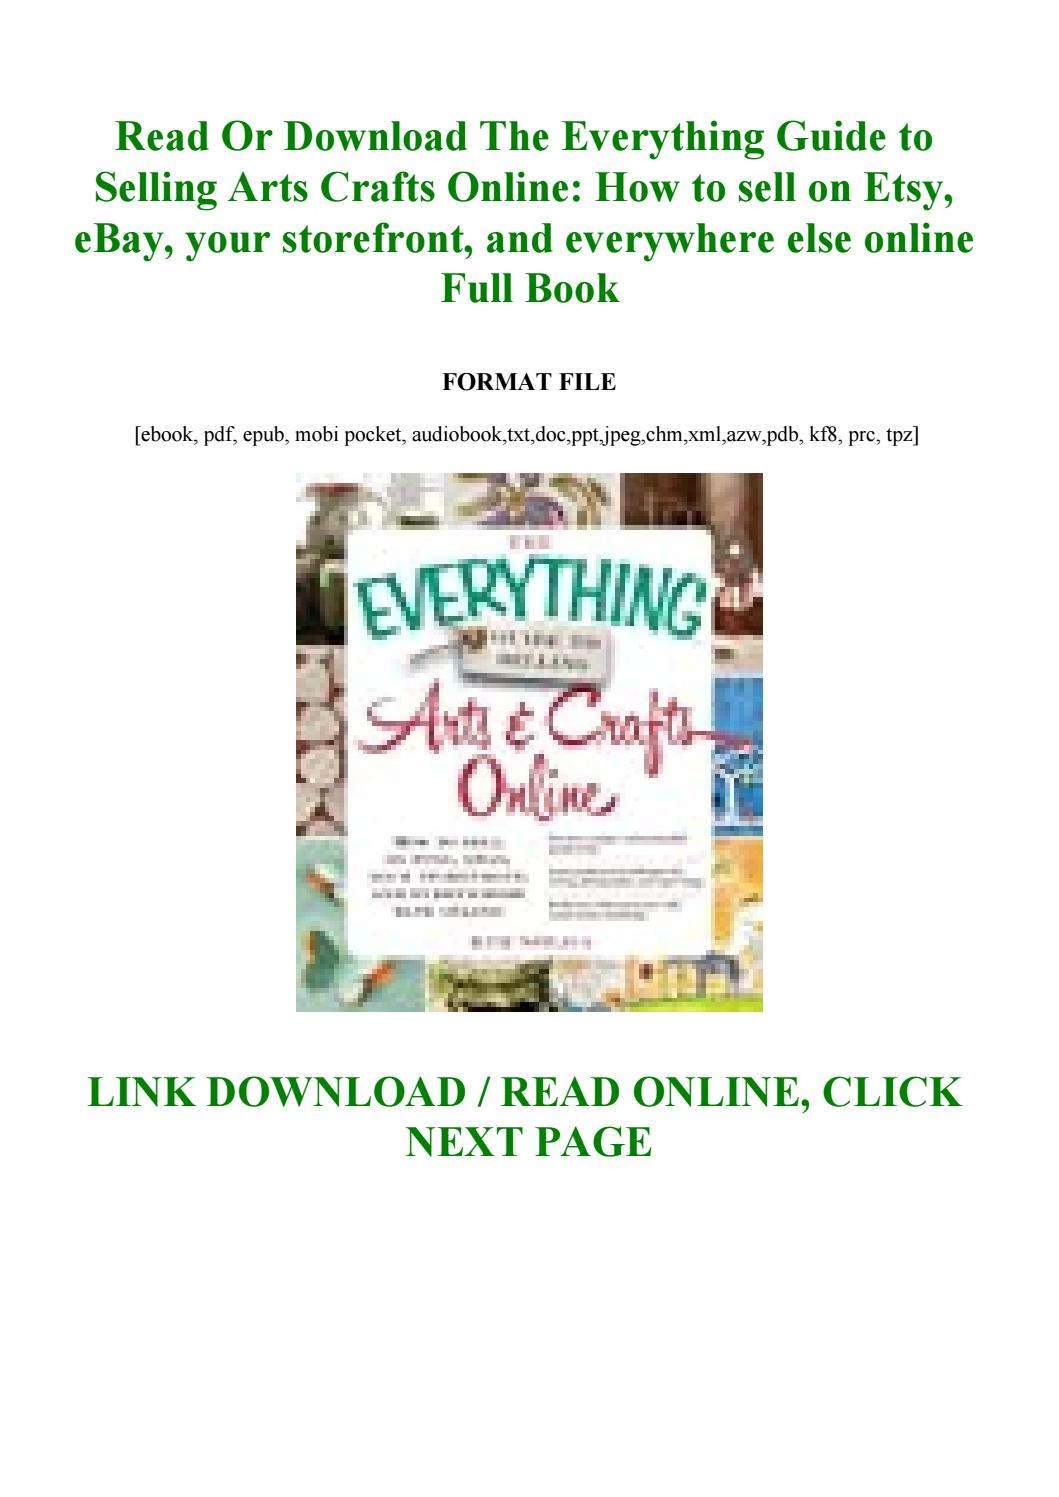 The Everything Guide To Selling Arts Crafts Online How To Sell On Etsy Ebay Your Storefront By Frfg6545rufc Issuu